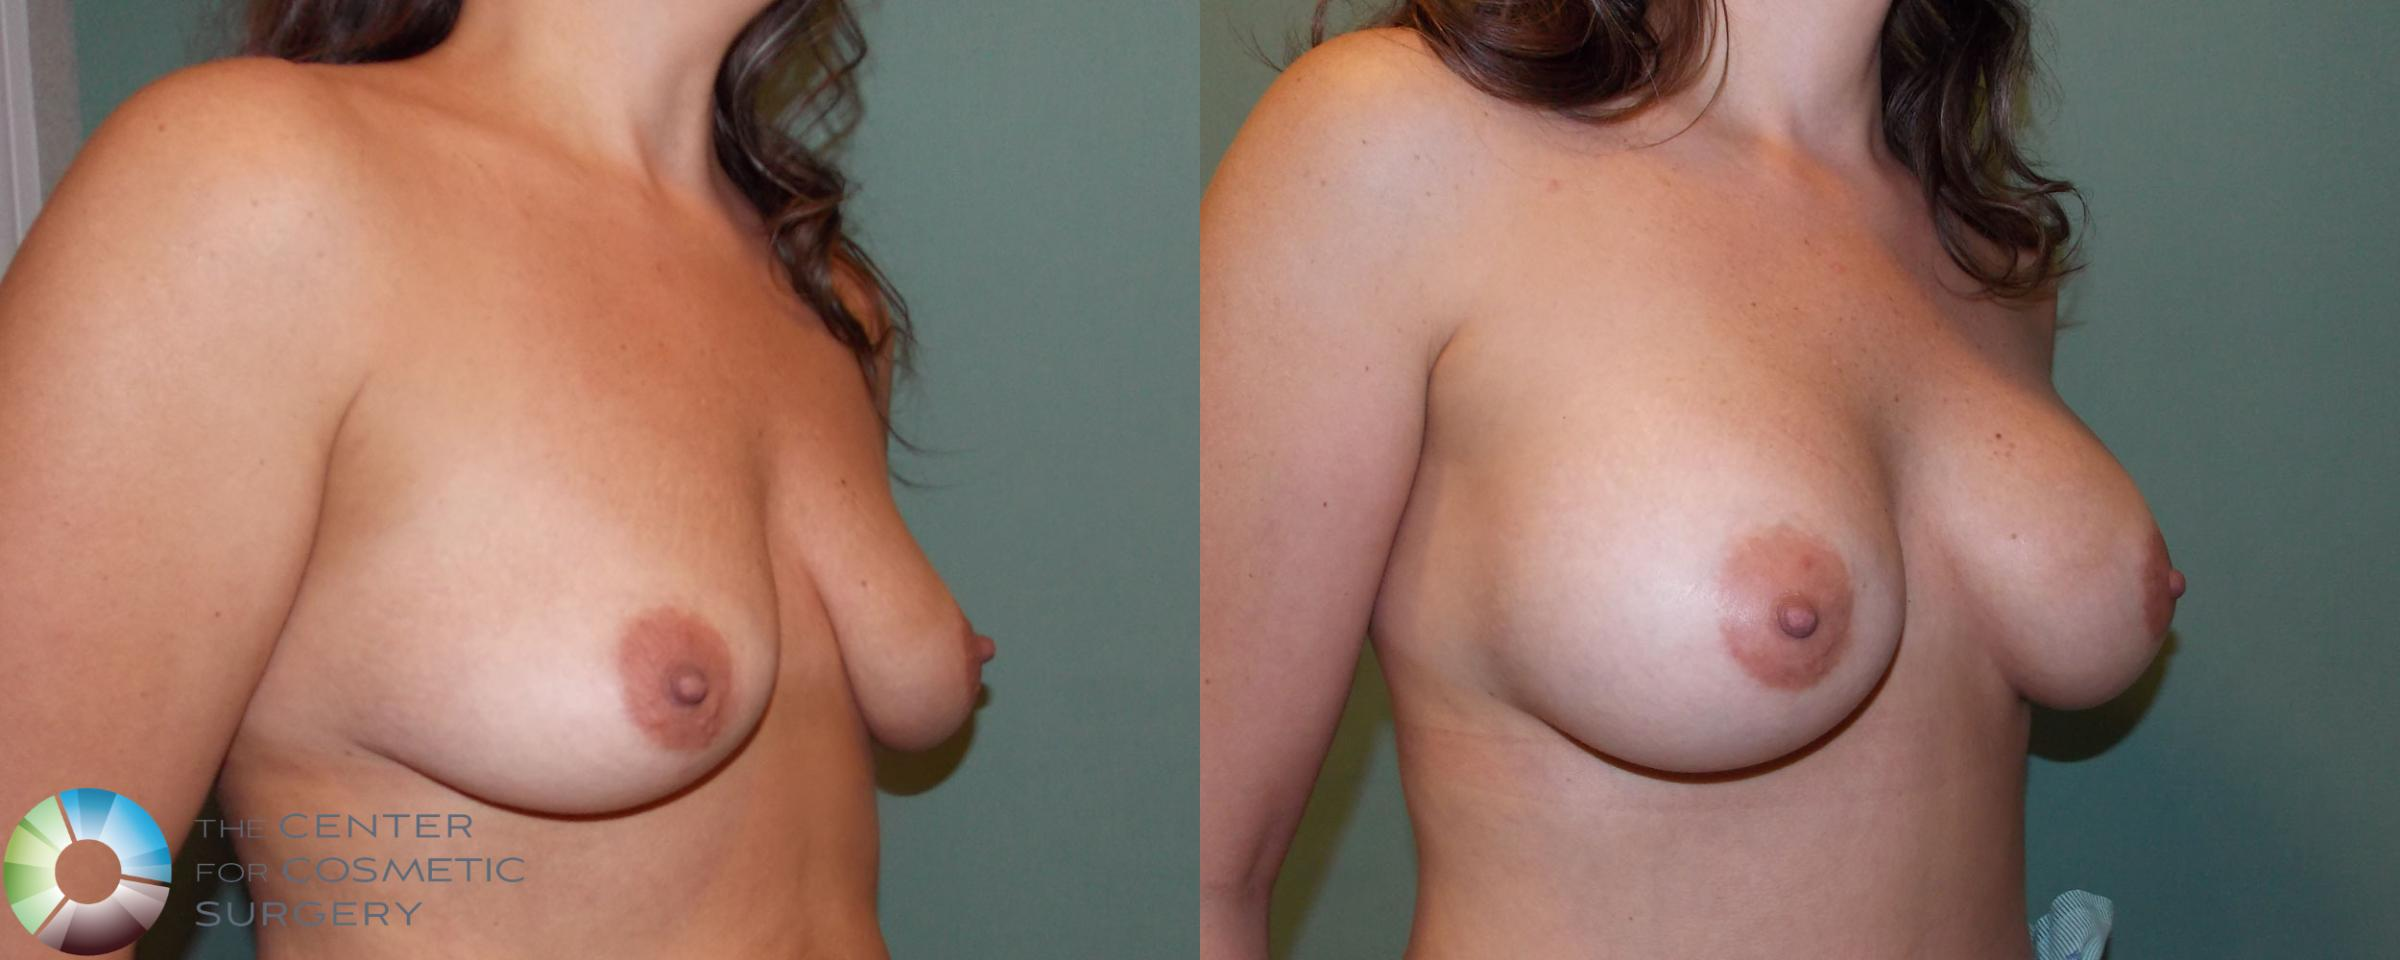 Breast Augmentation Case 682 Before & After View #2 | Golden, CO | The Center for Cosmetic Surgery